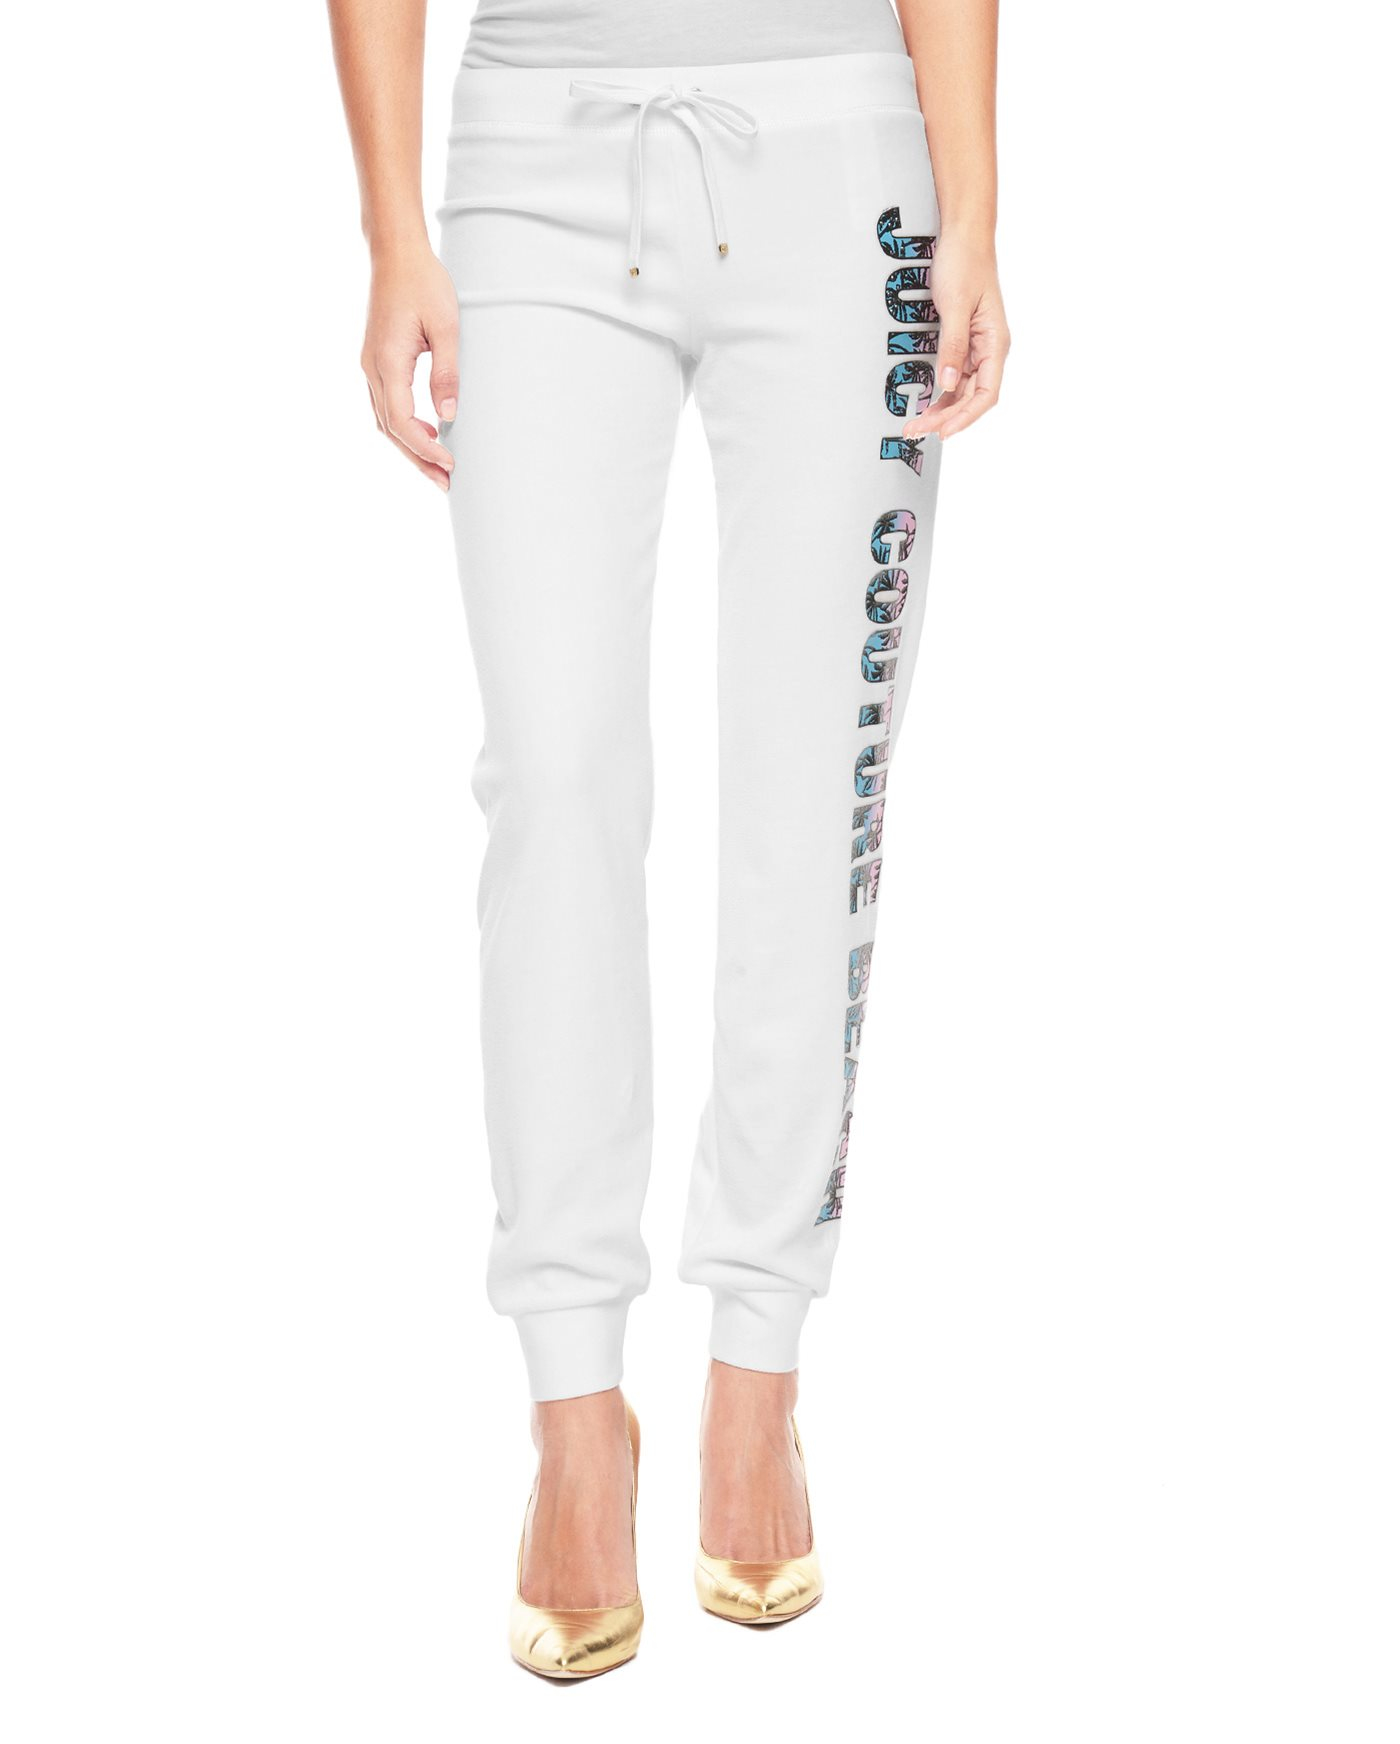 Juicy couture Logo Velour Beach Slim Pant in White | Lyst